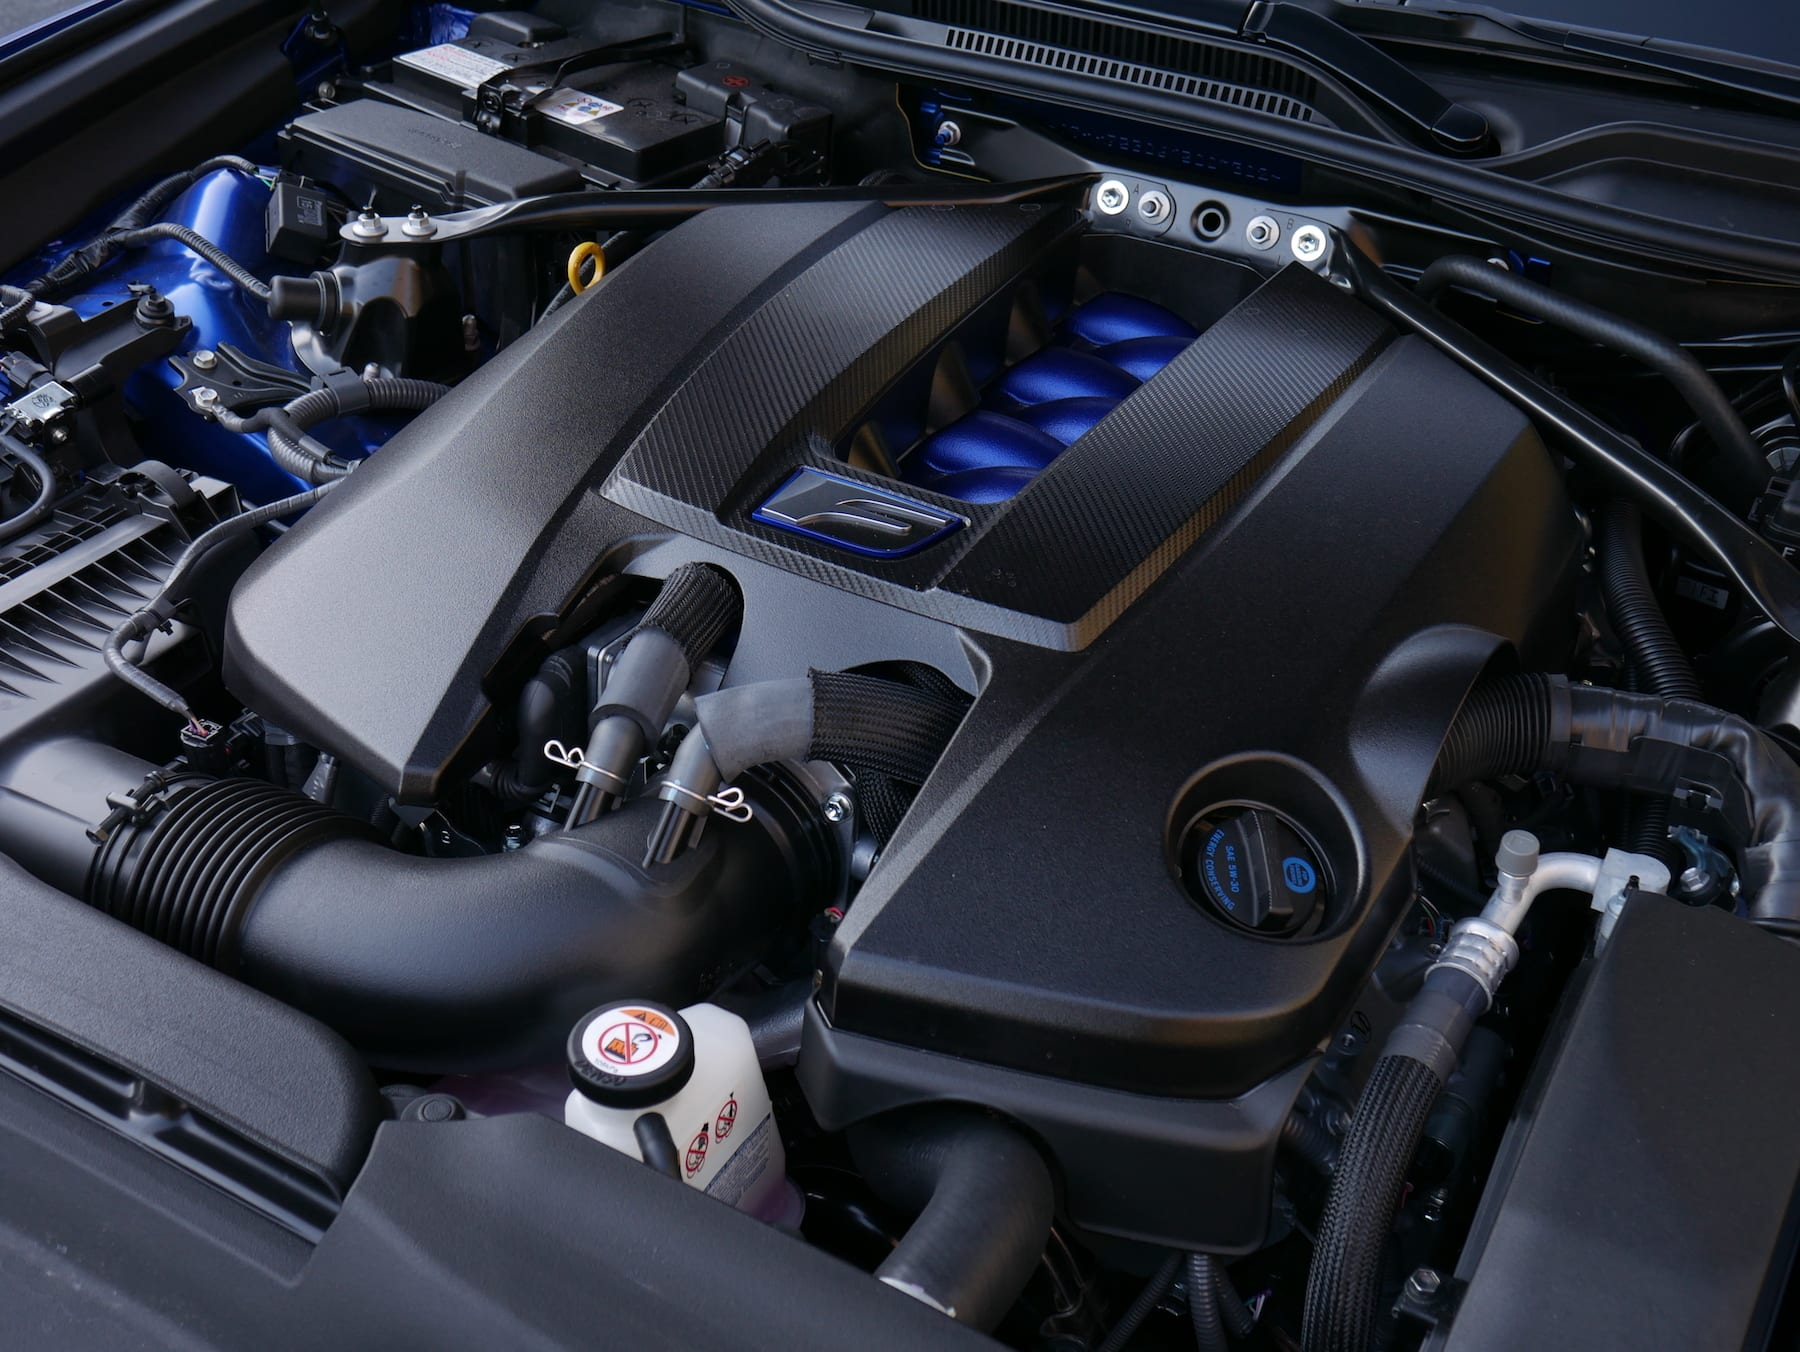 2019 Lexus RC F V8 engine